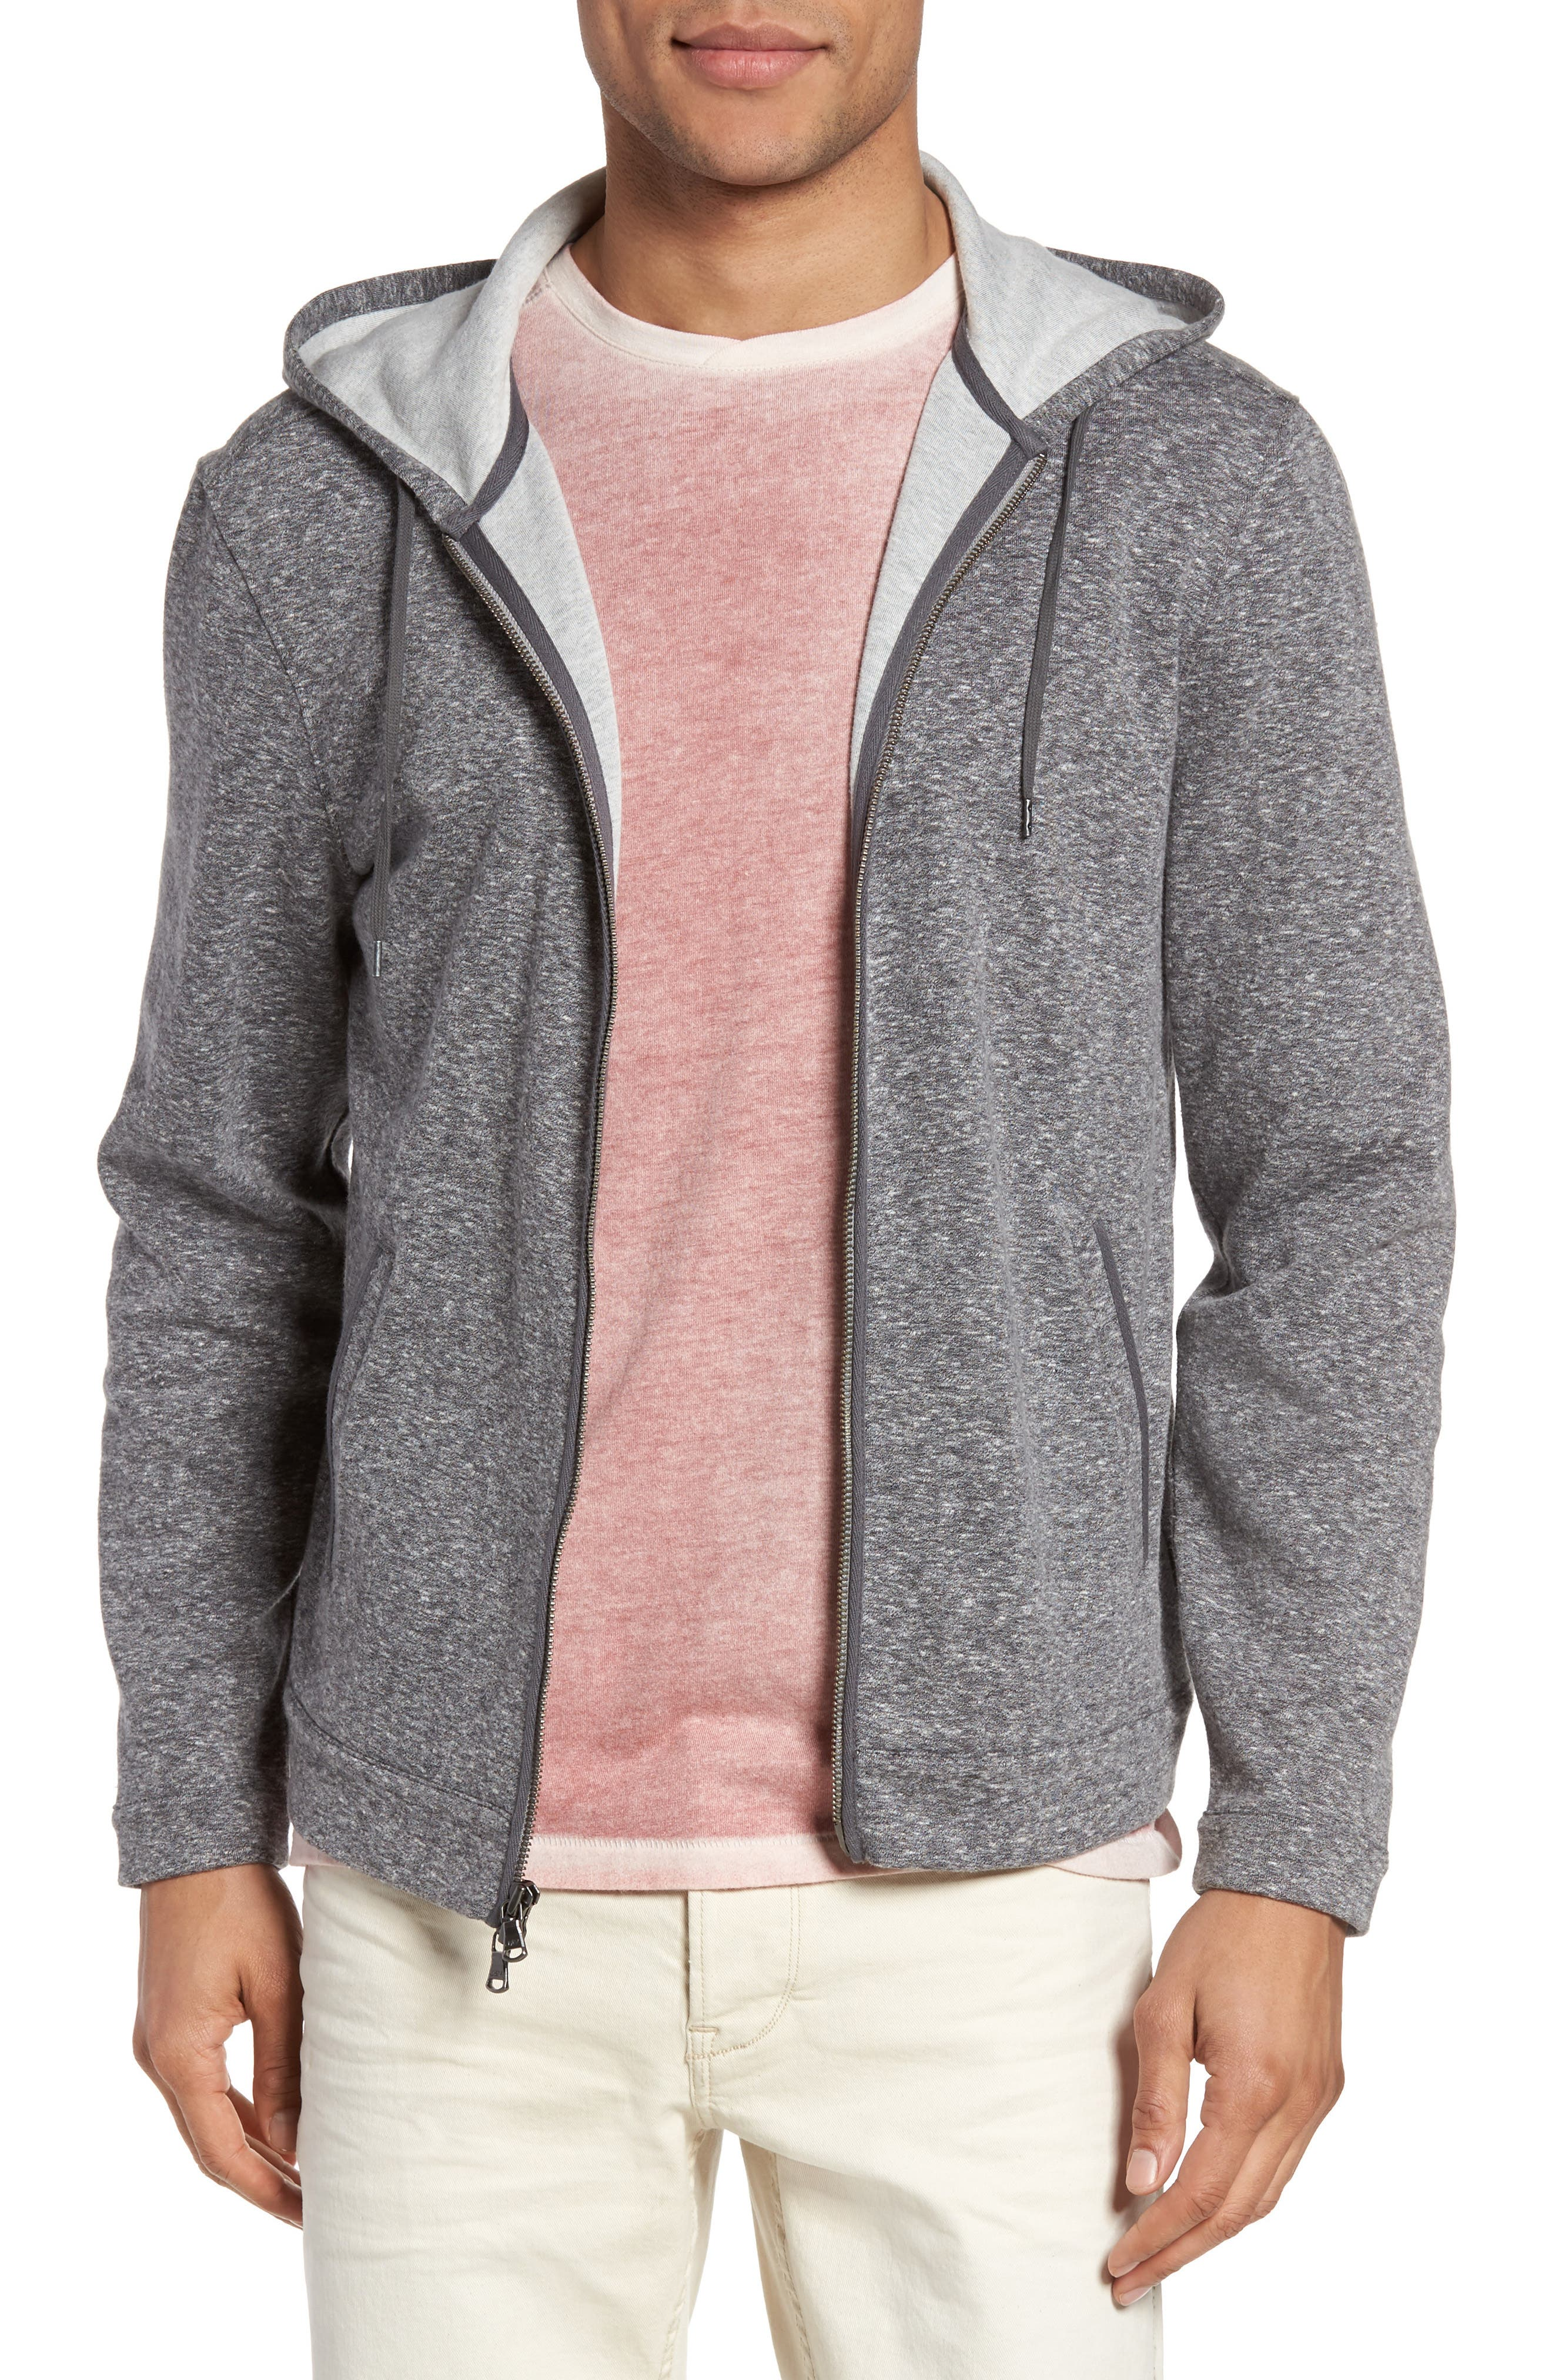 Zip Front Hoodie,                             Main thumbnail 1, color,                             Medium Grey